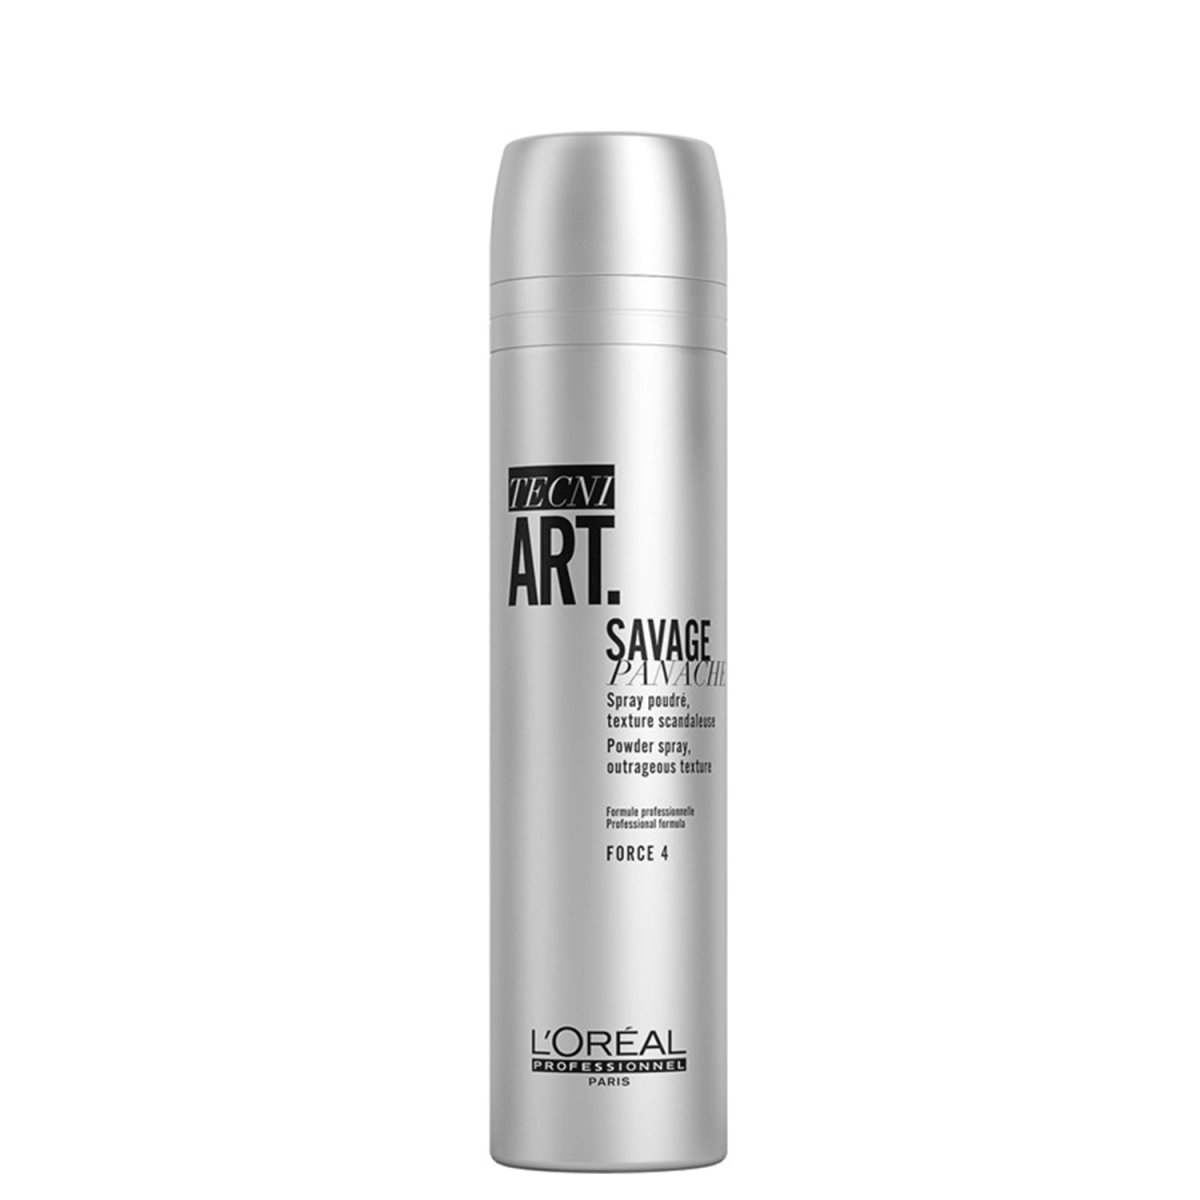 Loreal Tecni.Art Savage Panache 250 ml